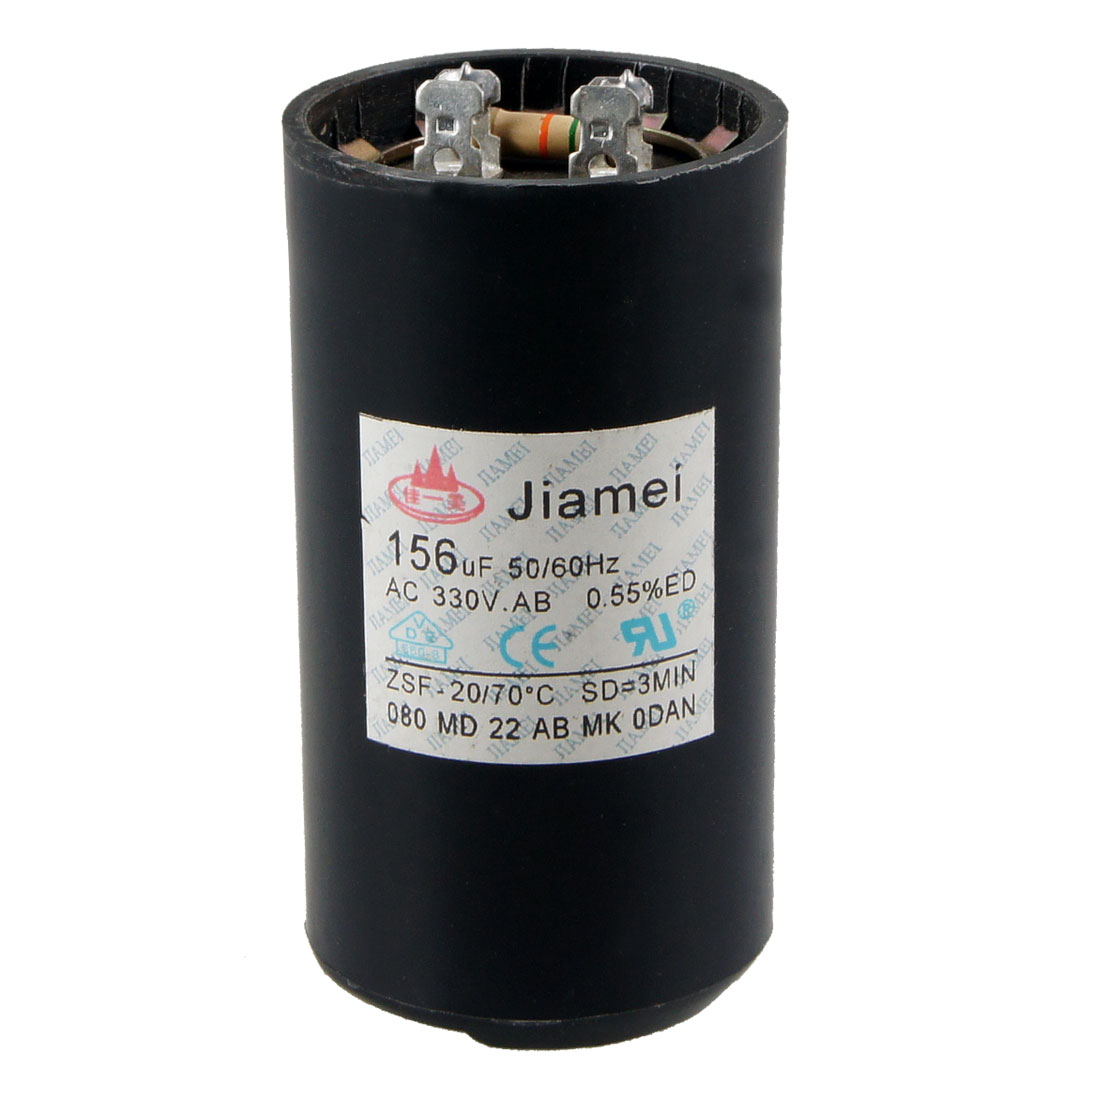 Air Conditioner Compressor Start Motor Capacitor 50/60Hz 156uF AC 330V